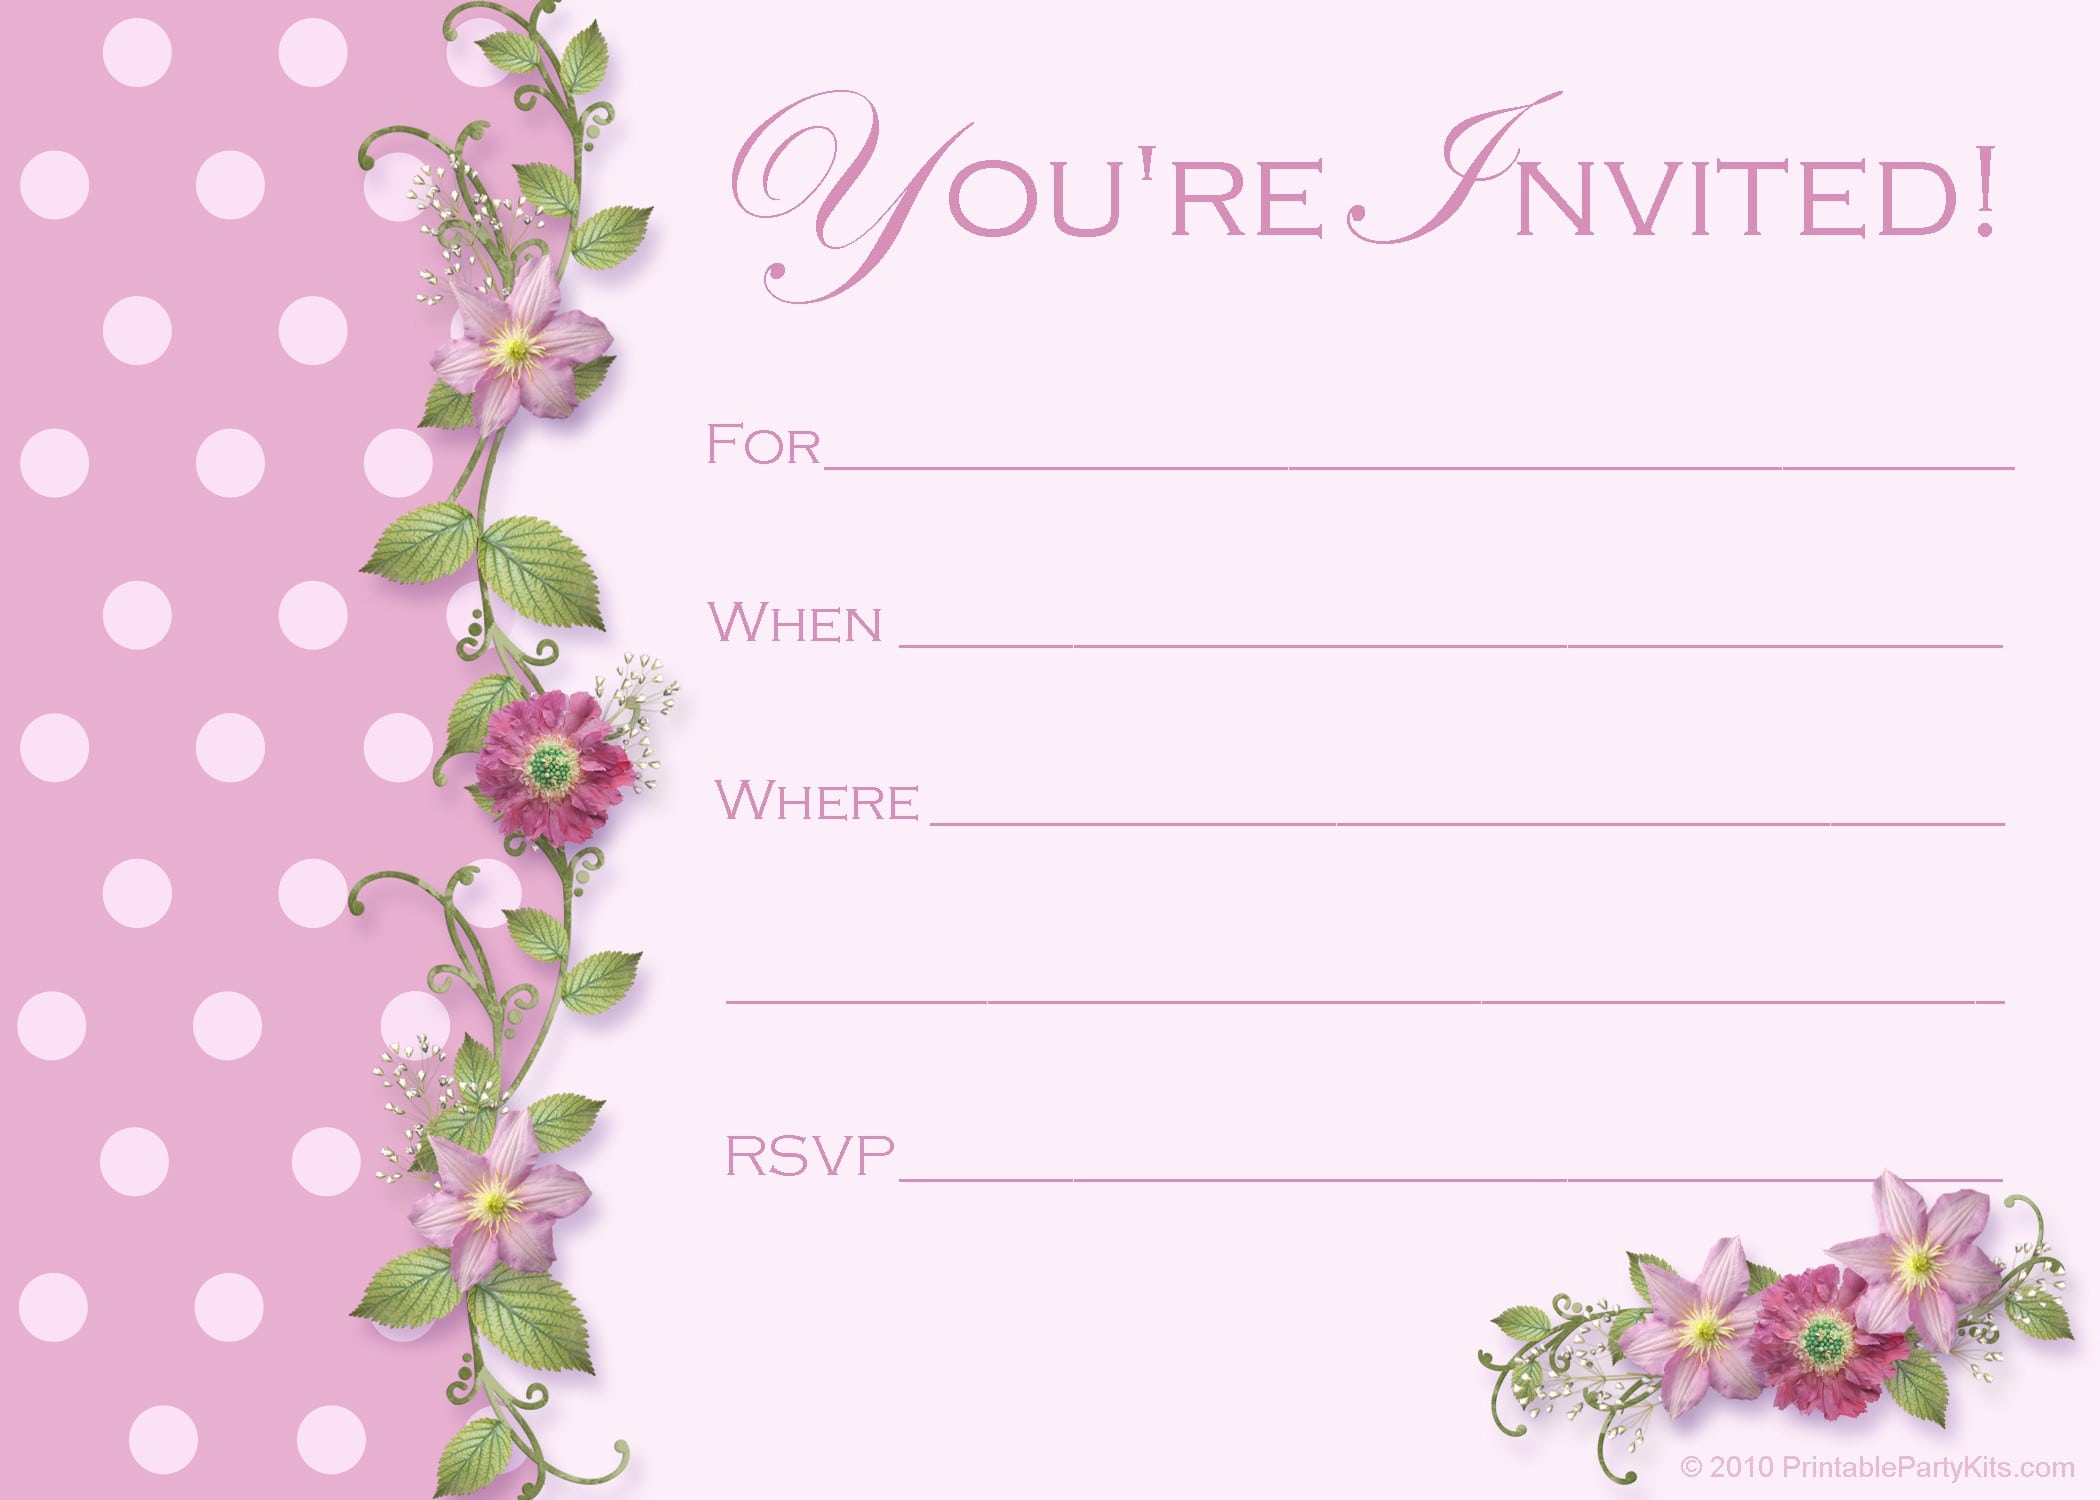 Free Printable Th Birthday Party Invitation Templates - Free printable birthday party invitations templates